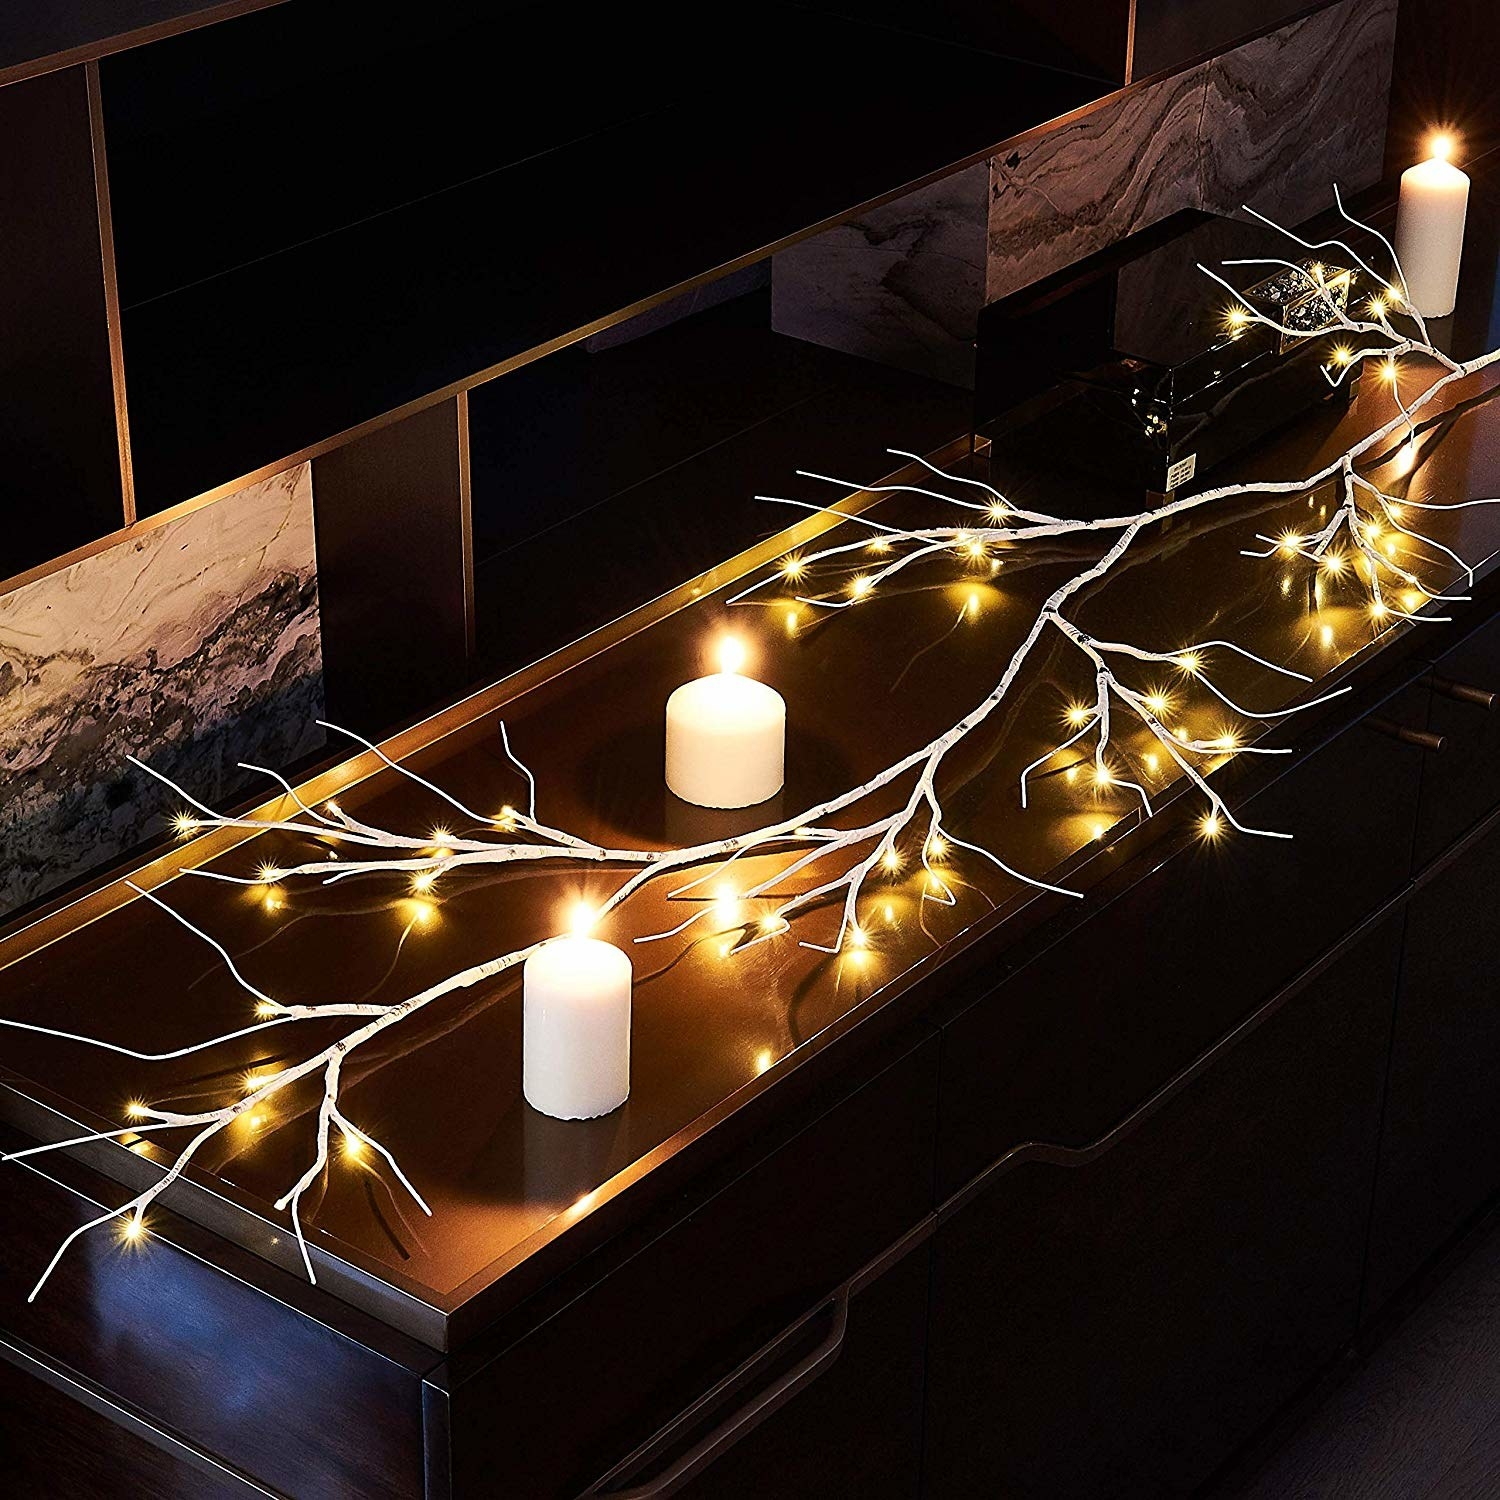 white branch speckled with individual lights on a mantle